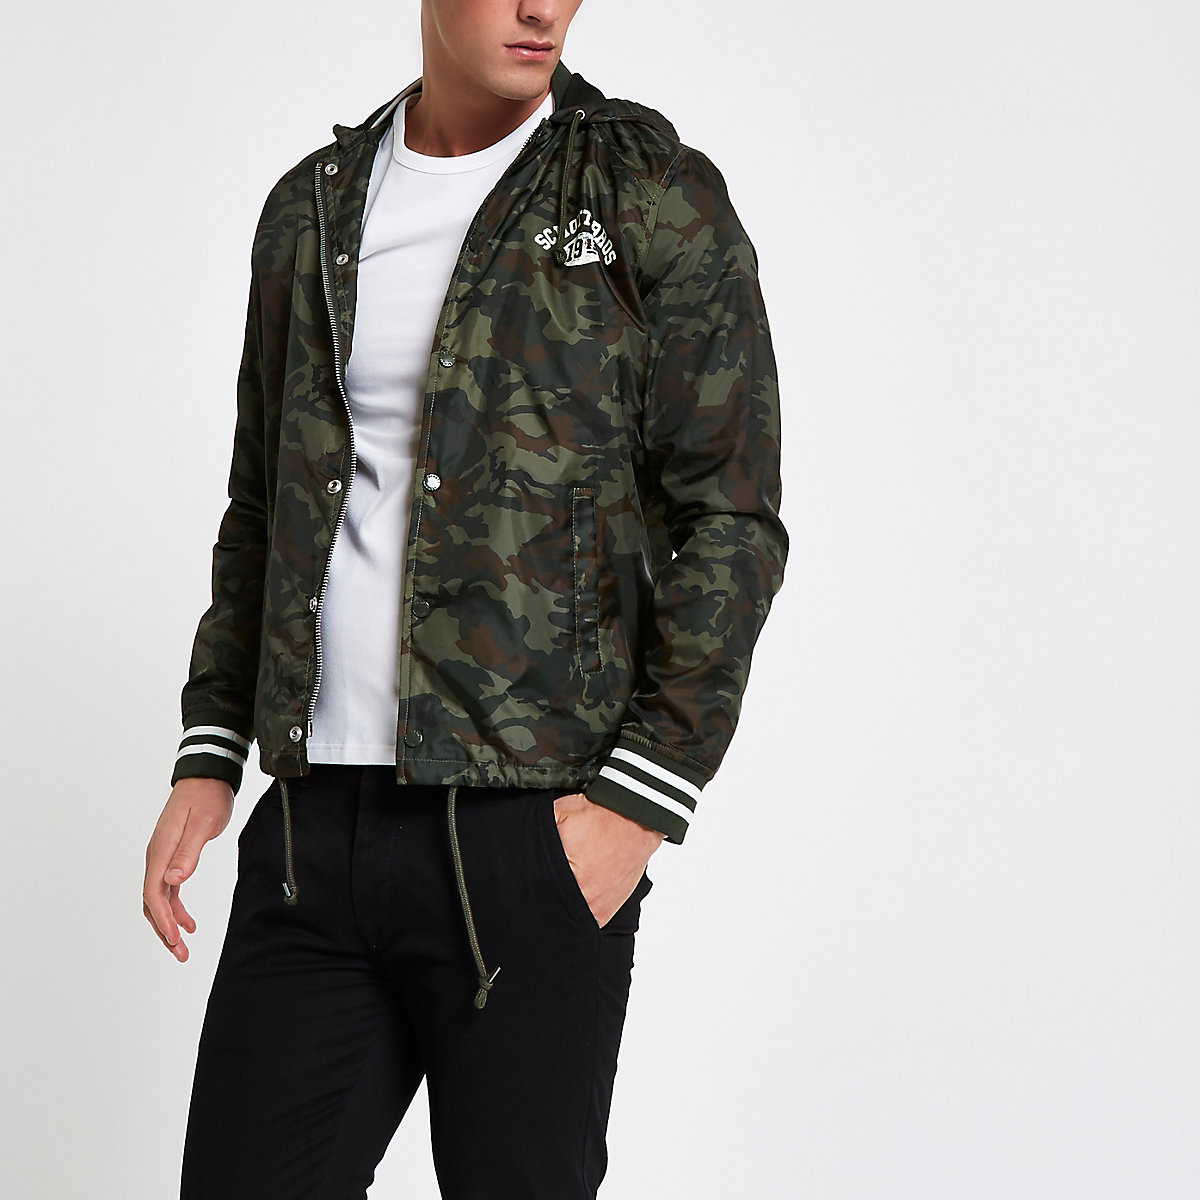 Schott khaki green coach jacket